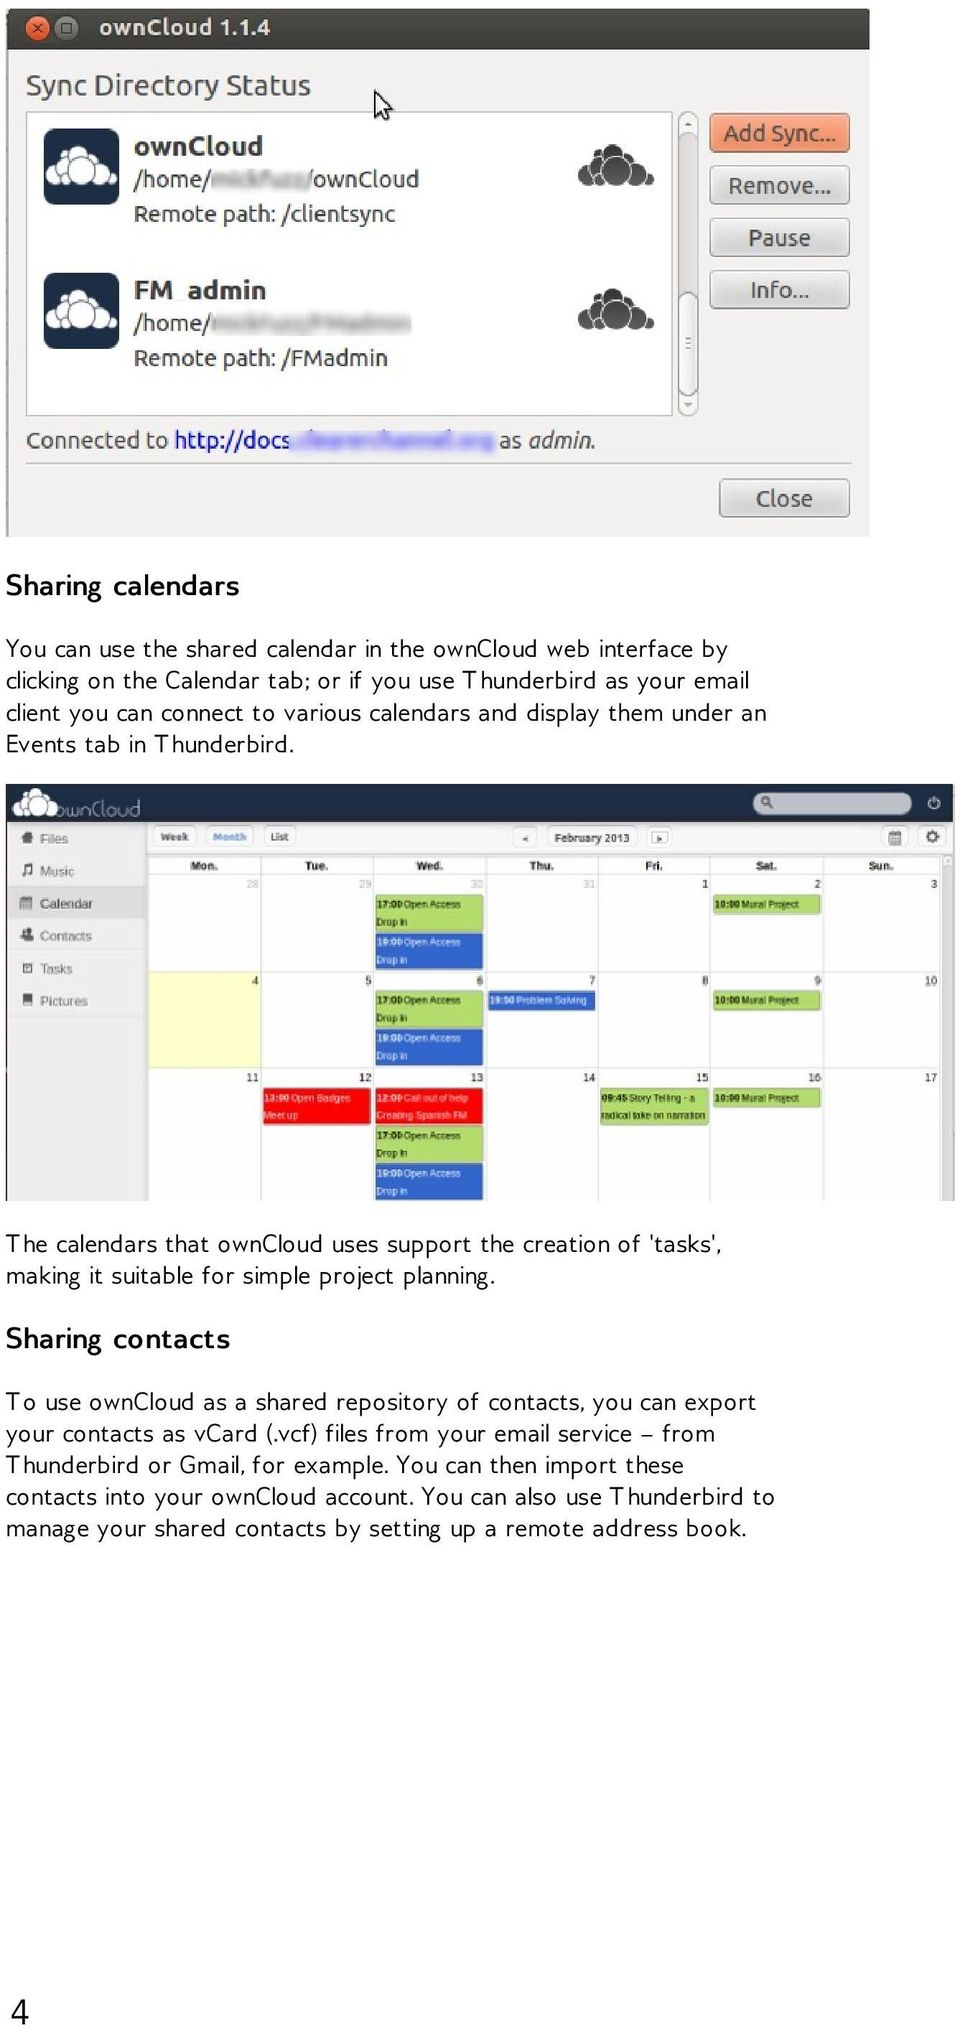 T he calendars that owncloud uses support the creation of 'tasks', making it suitable for simple project planning.